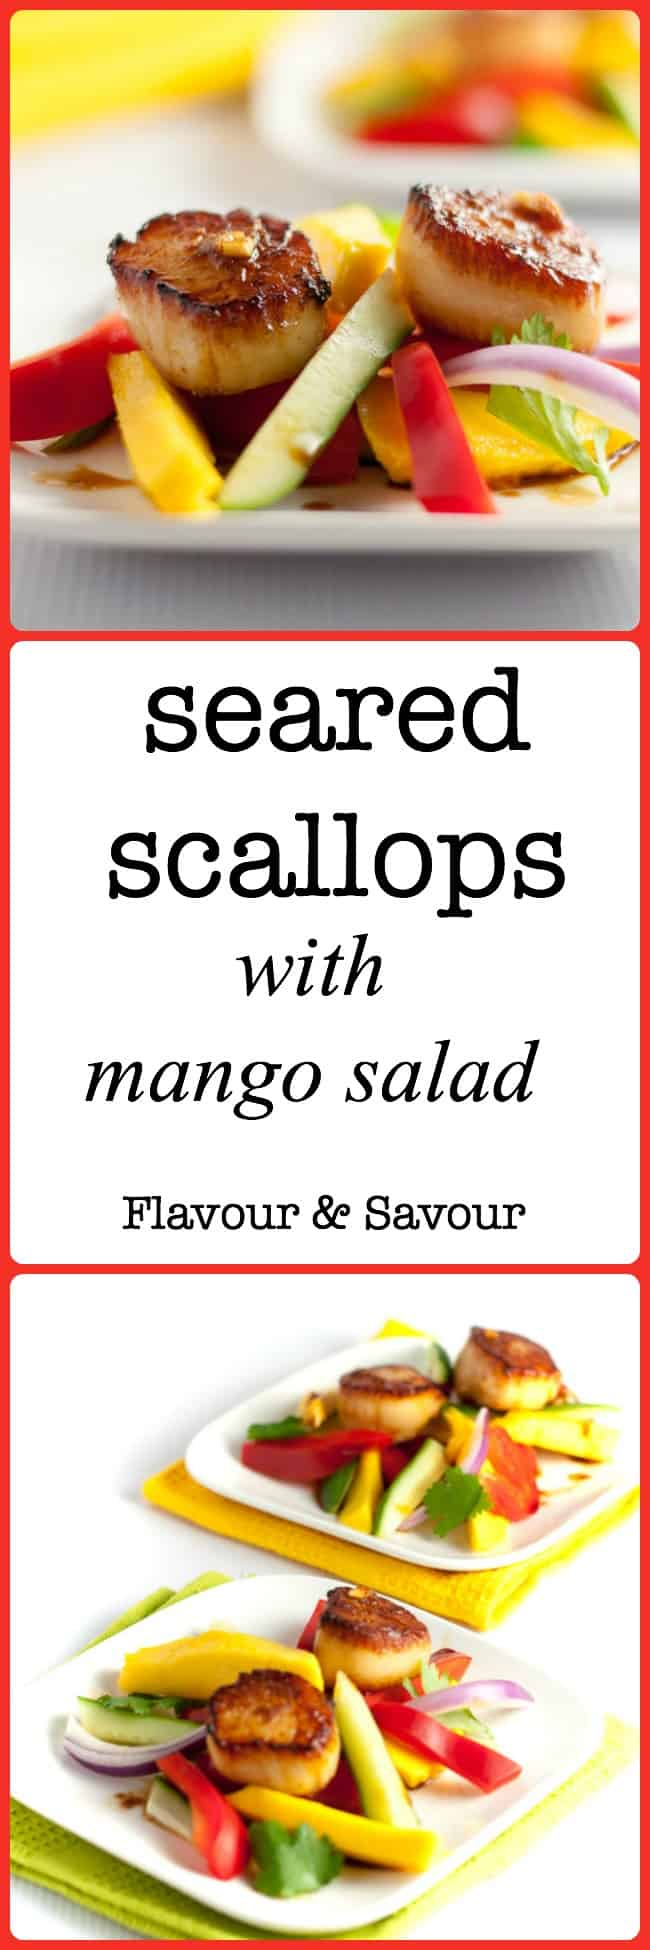 Seared Scallops with Mango Salad - Flavour and Savour